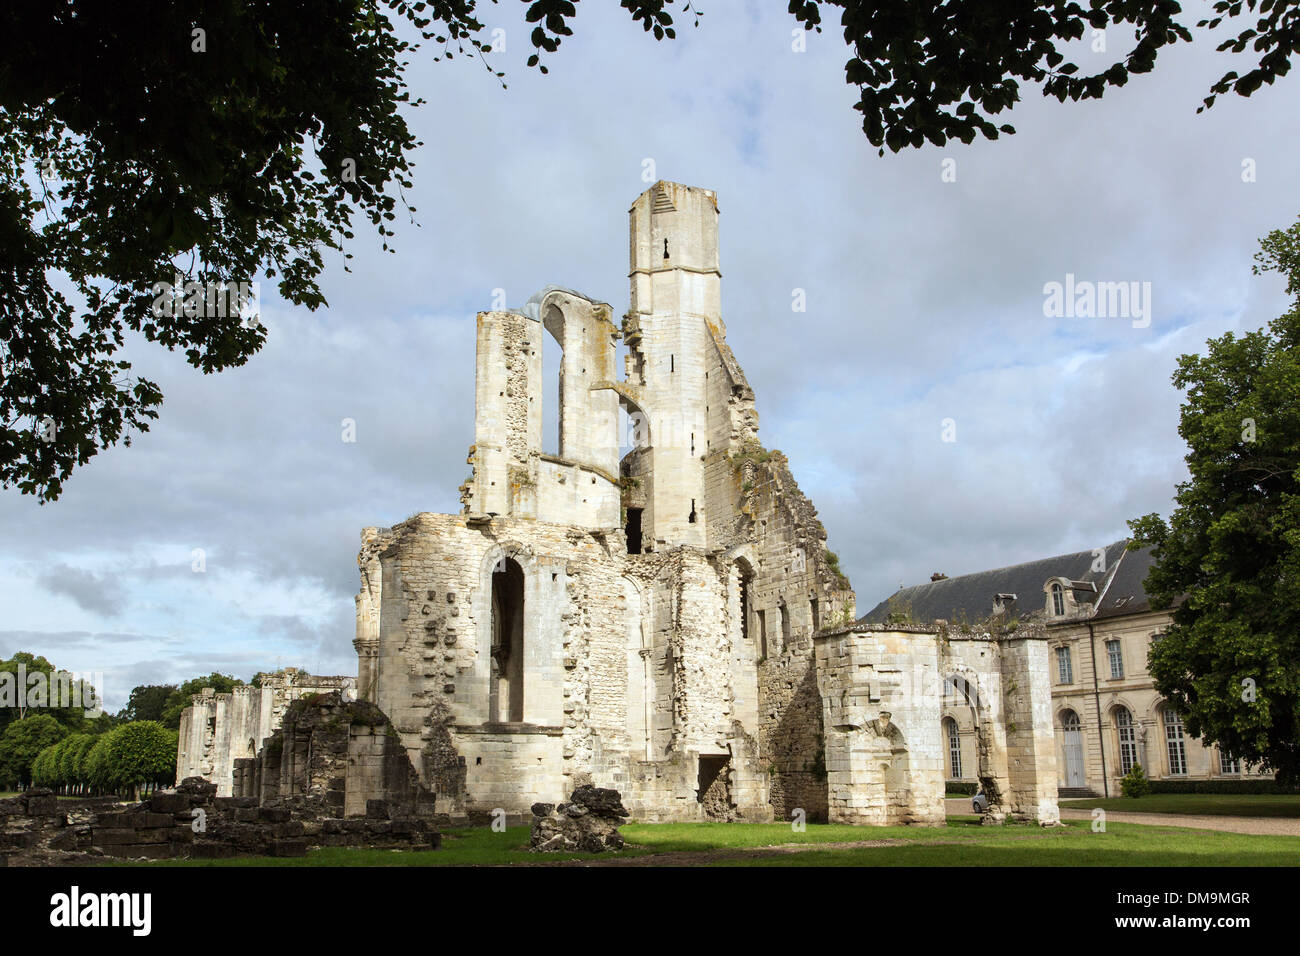 RUINS OF THE 13TH CENTURY ABBEY CHURCH, ESTATE OF THE FORMER ROYAL ABBEY OF CHAALIS, FONTAINE-CHAALIS, OISE (60), FRANCE - Stock Image